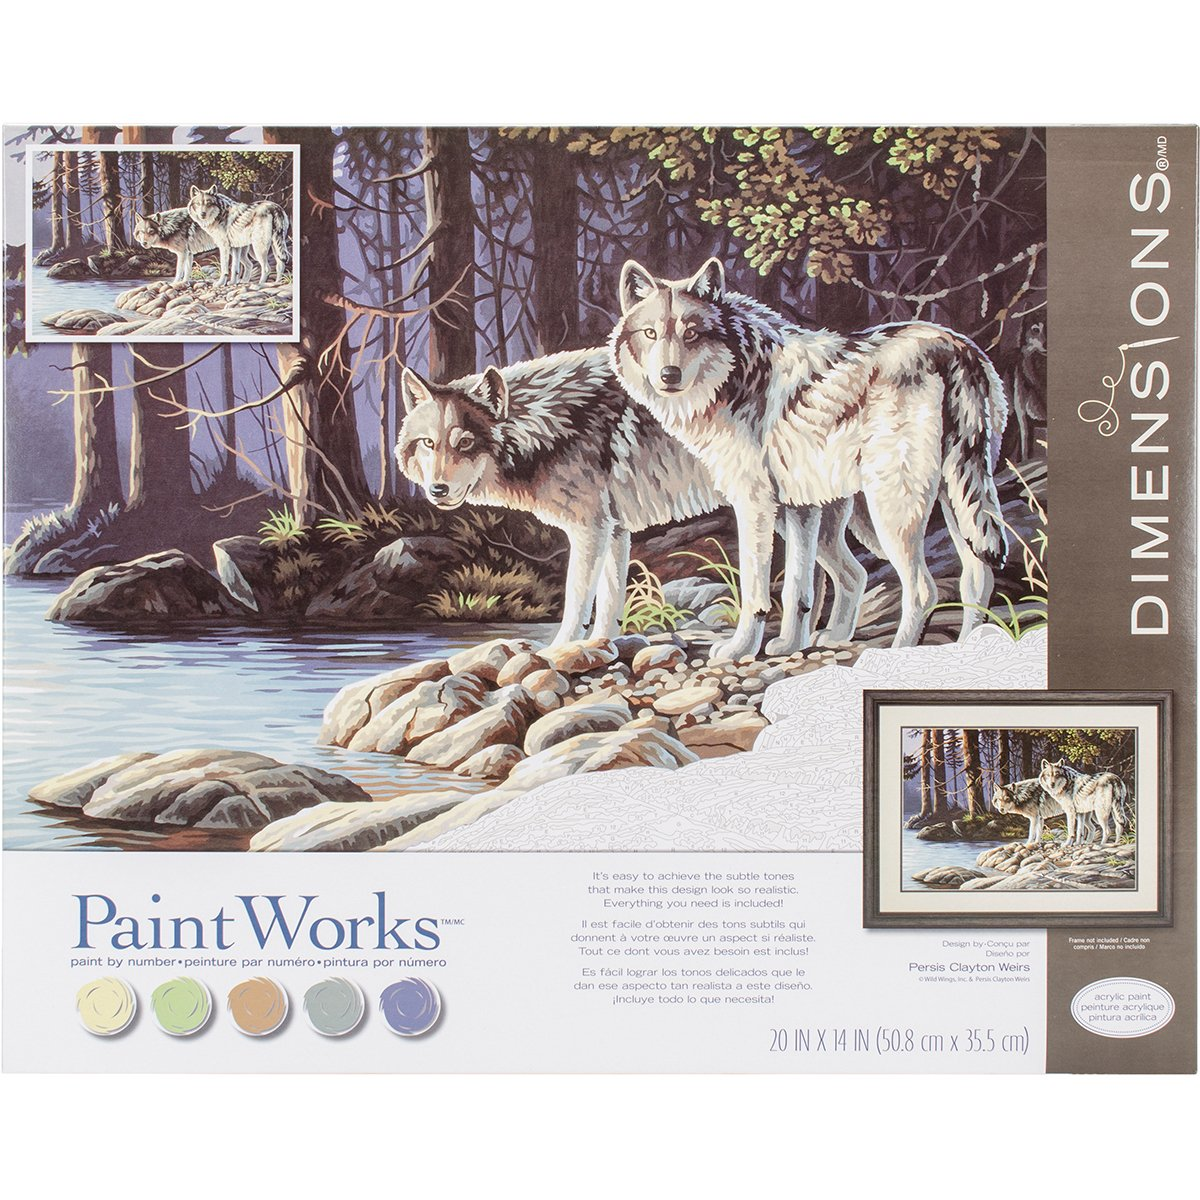 Amazon.com: Paintworks Paint By Number Kit 20 x 14 in. Gray Wolves ...